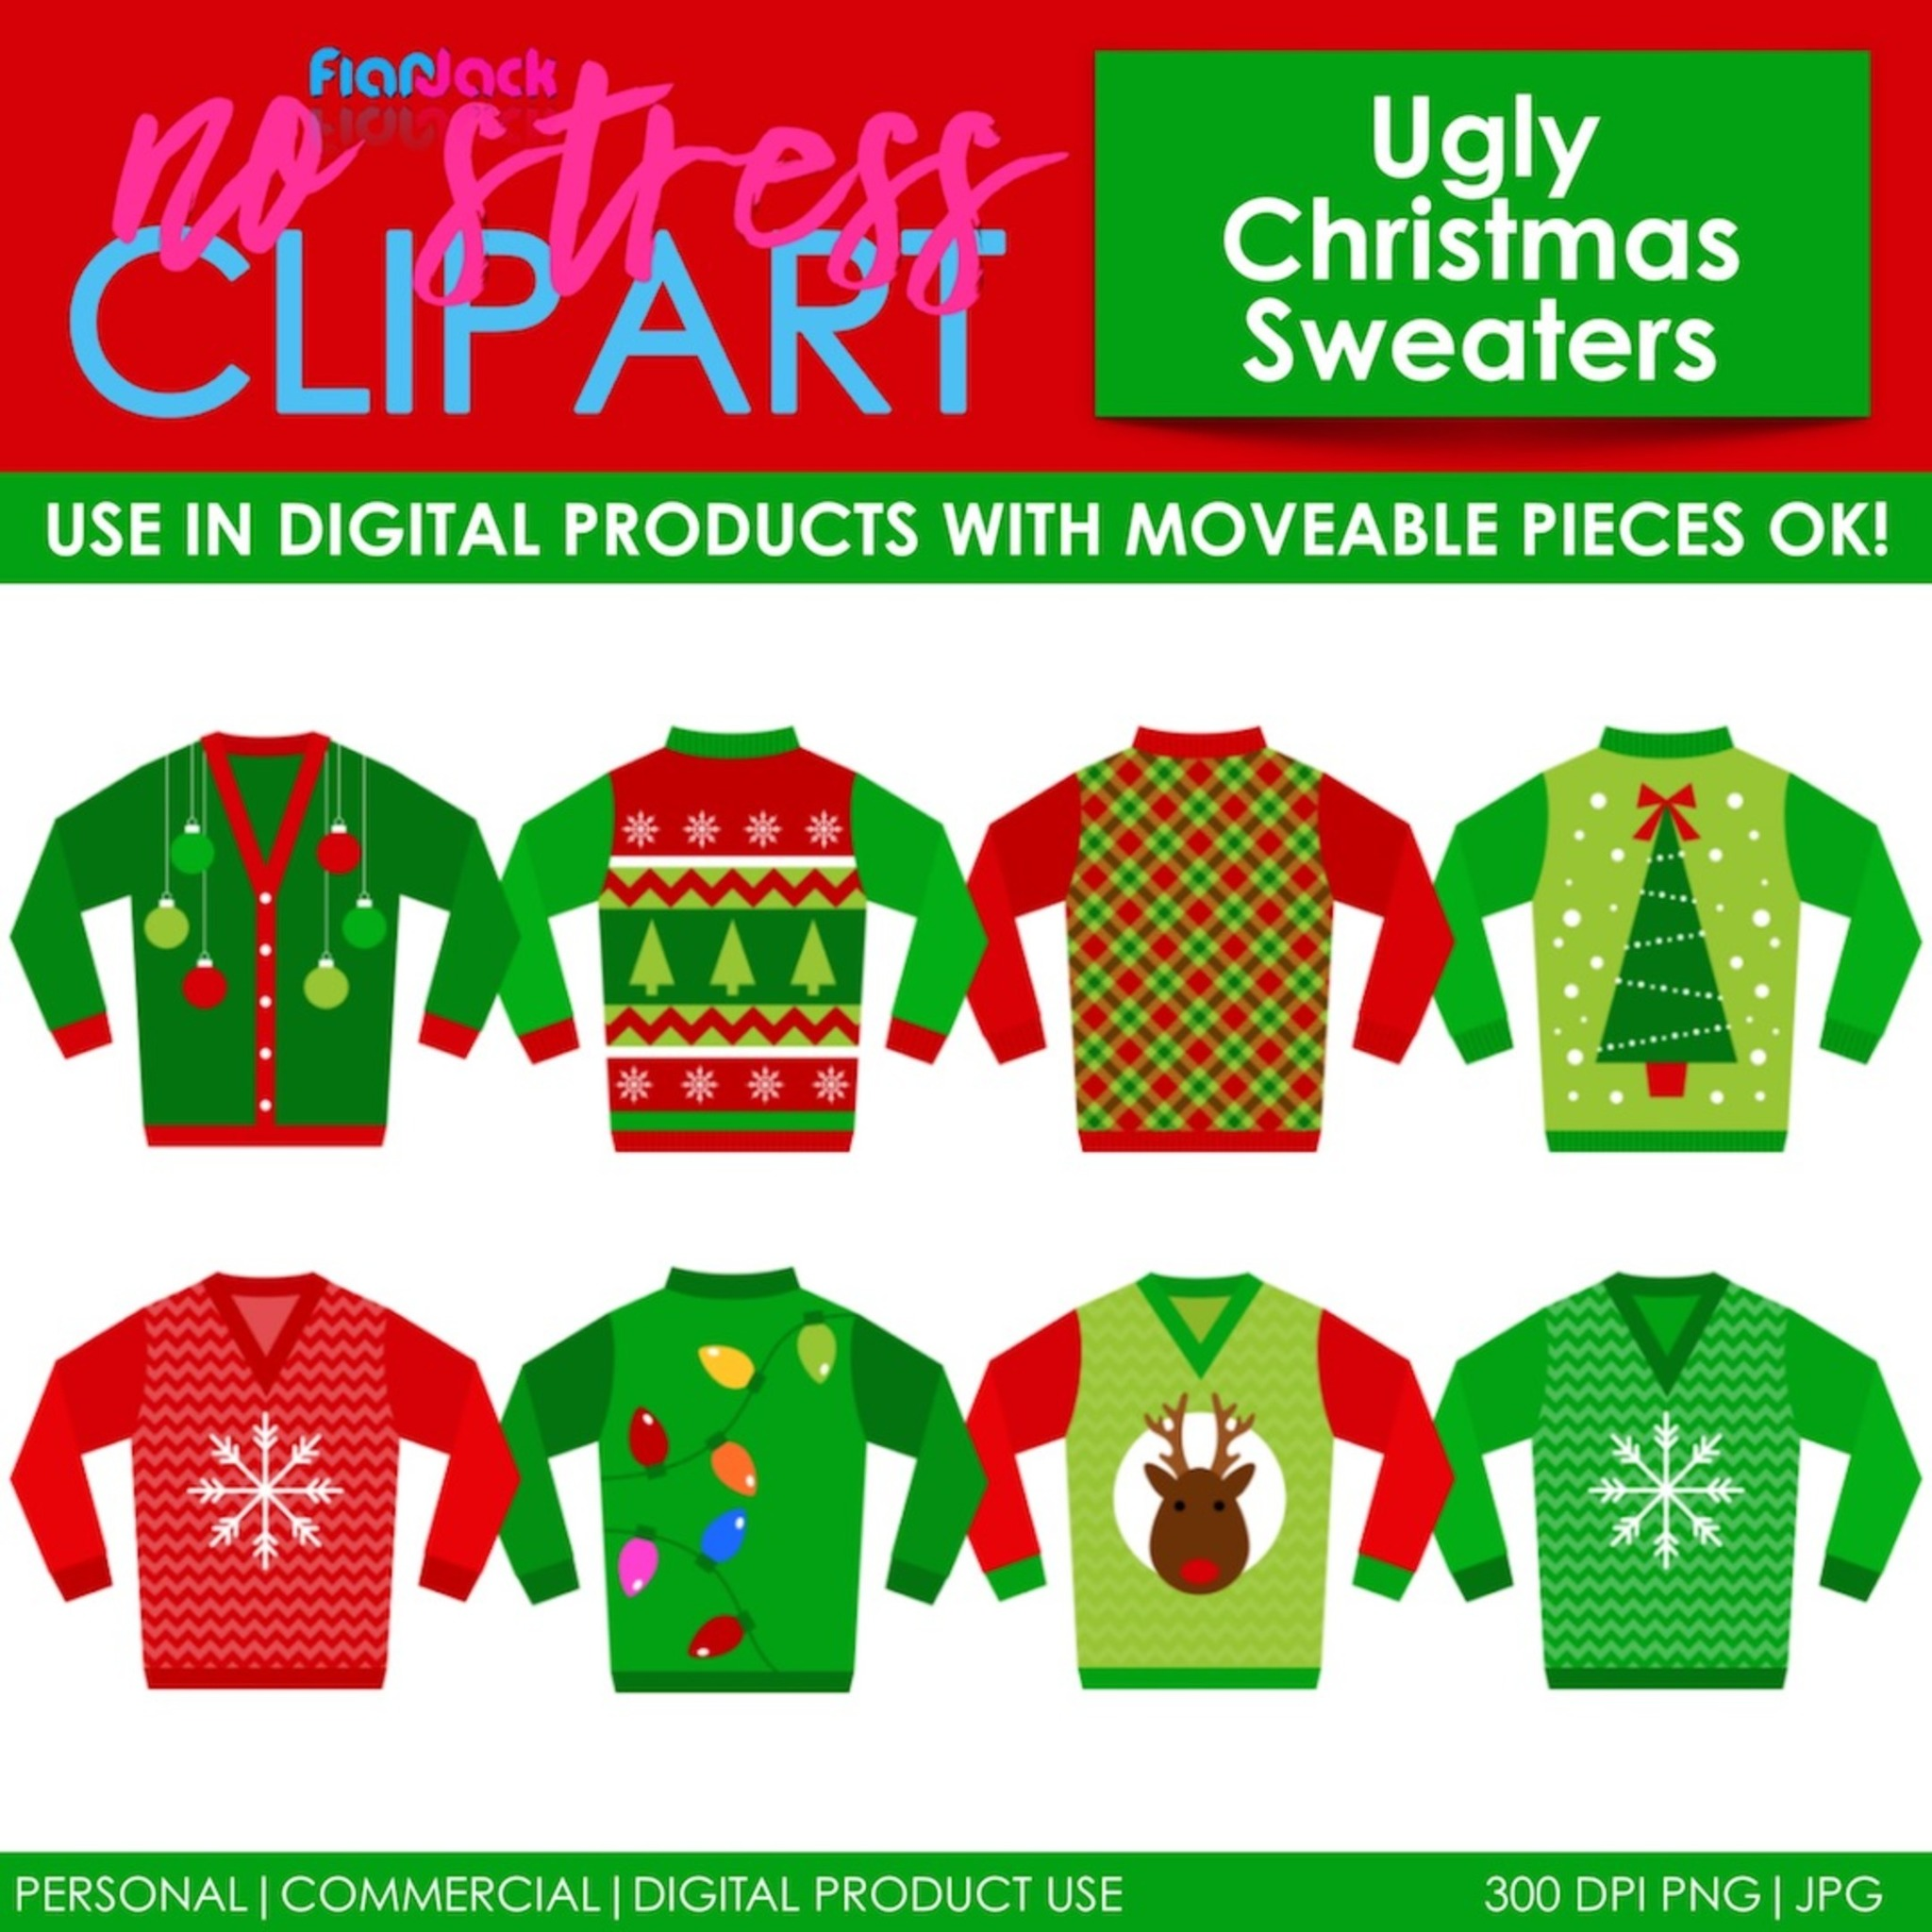 Christmas Ugly Sweaters - FlapJack Educational Resources